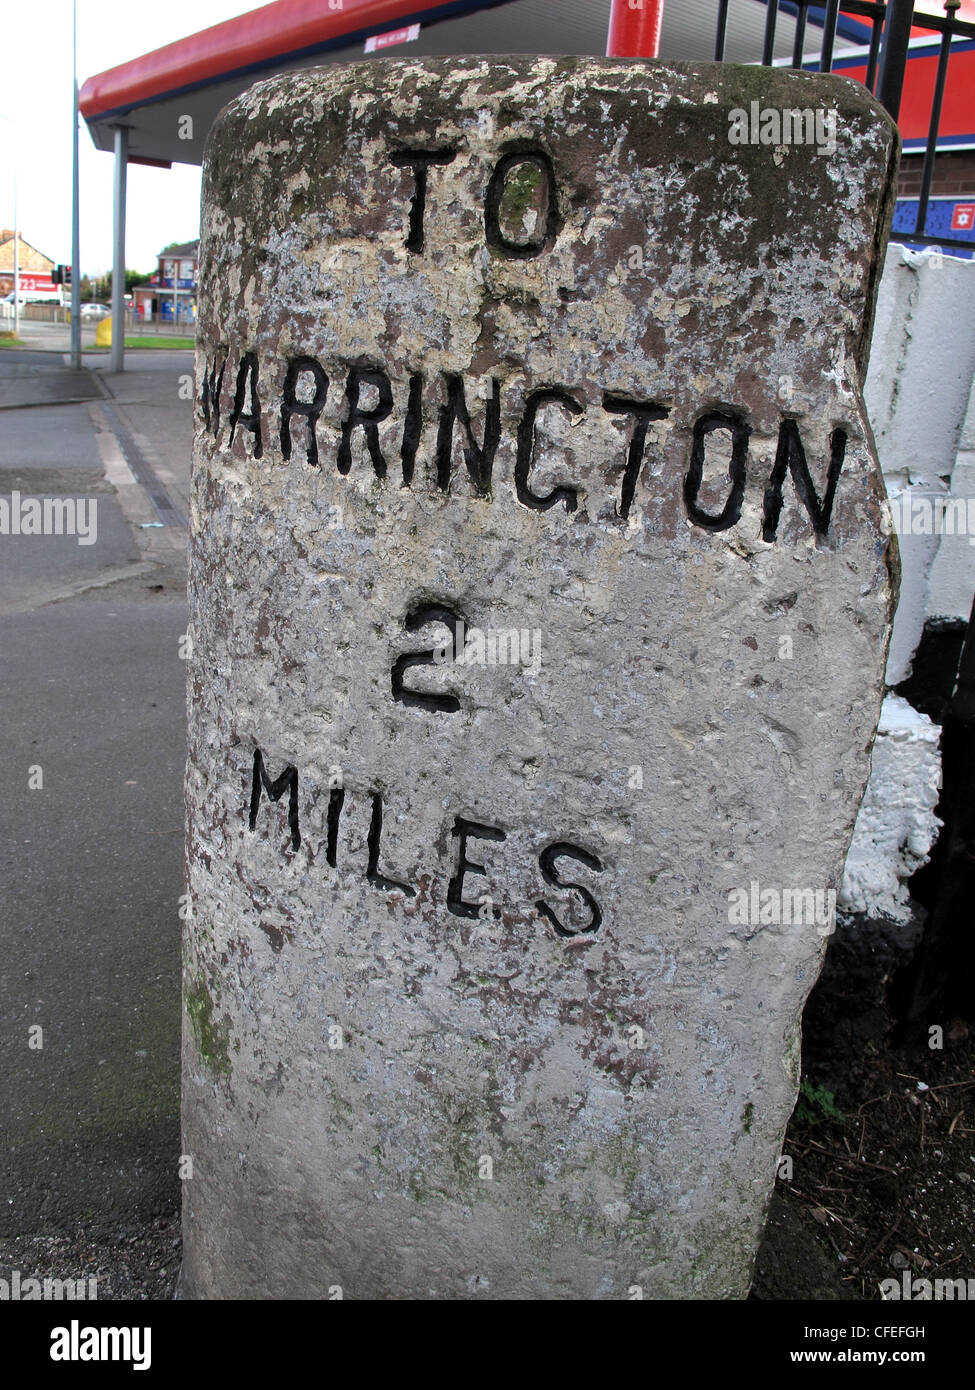 Milepost To Warrington 2 Miles, on A57 at Liverpool Road, Penketh, Cheshire, England UK - Stock Image